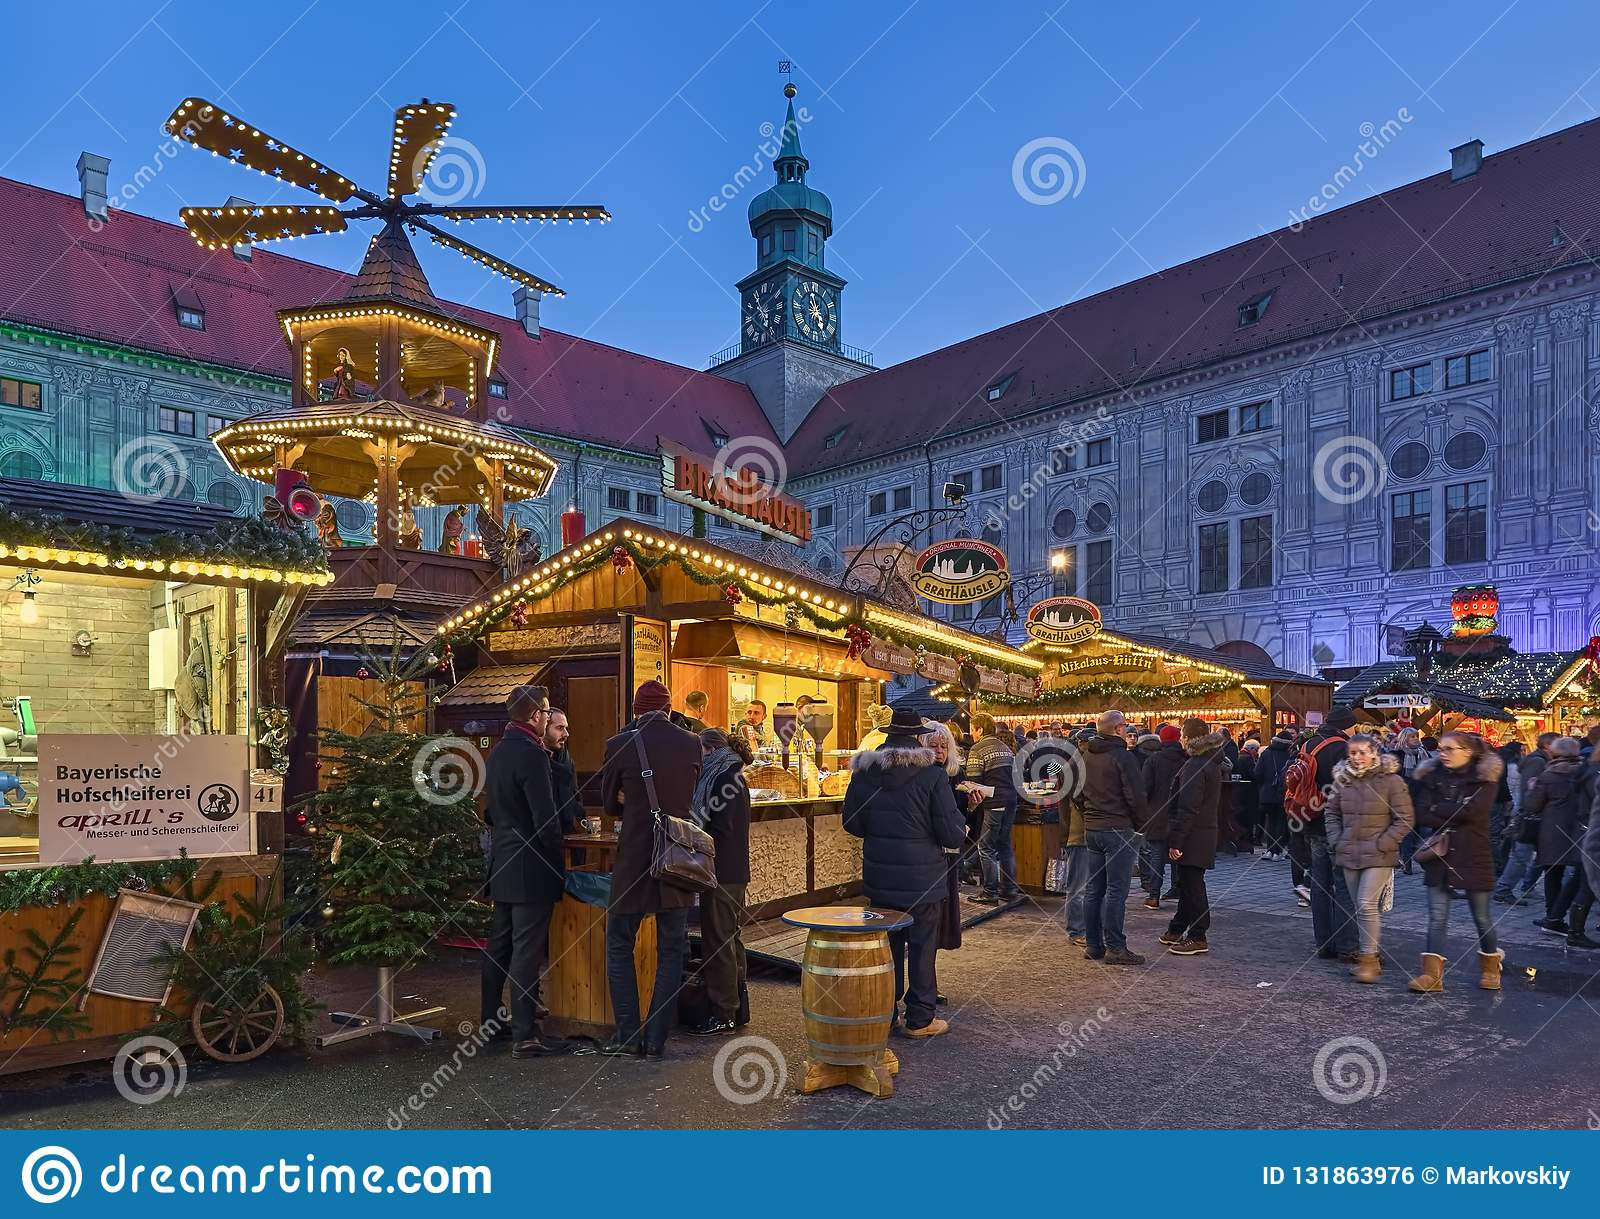 Christmas Village In Germany.Christmas Village At The Munich Residenz In Twilight